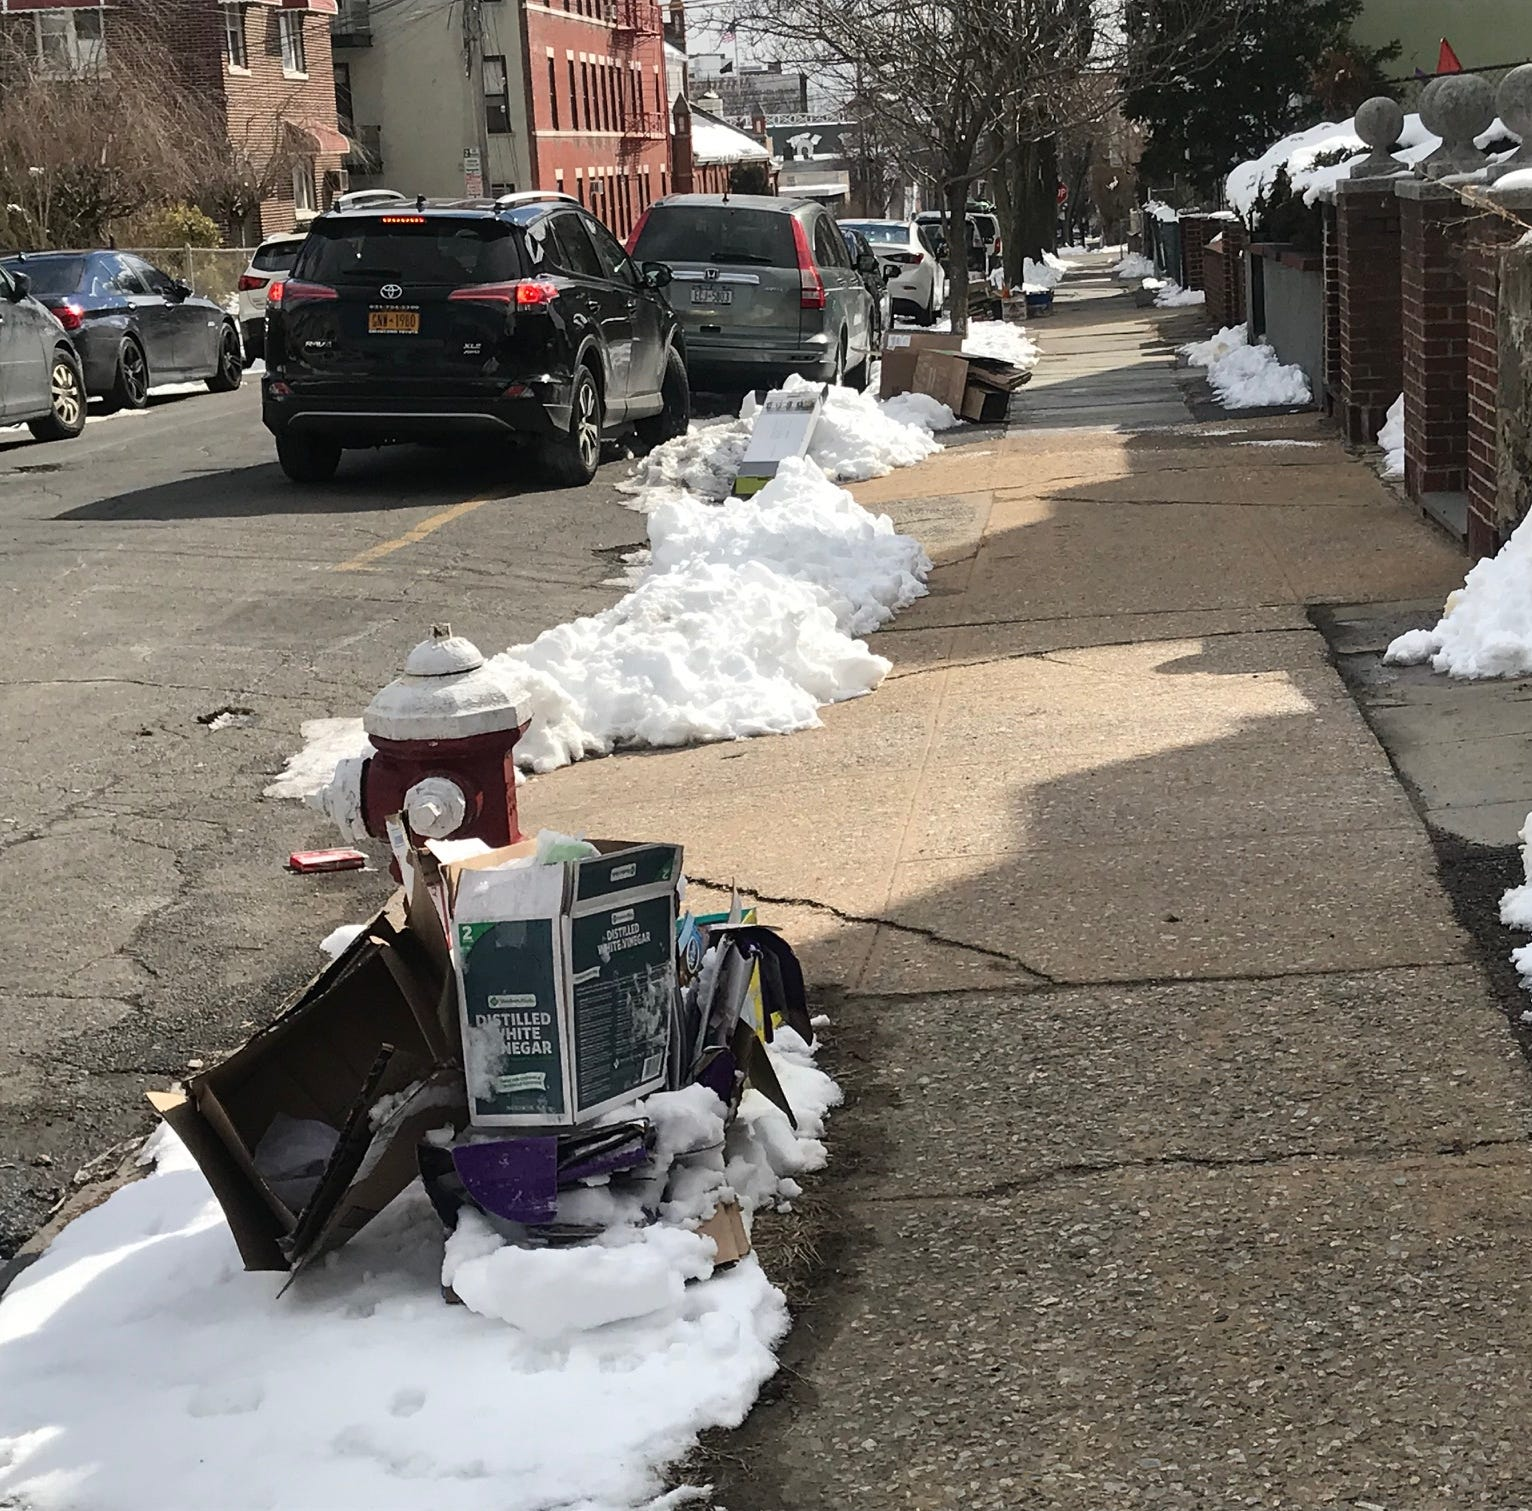 Mount Vernon recycling canceled due to unsafe garbage trucks